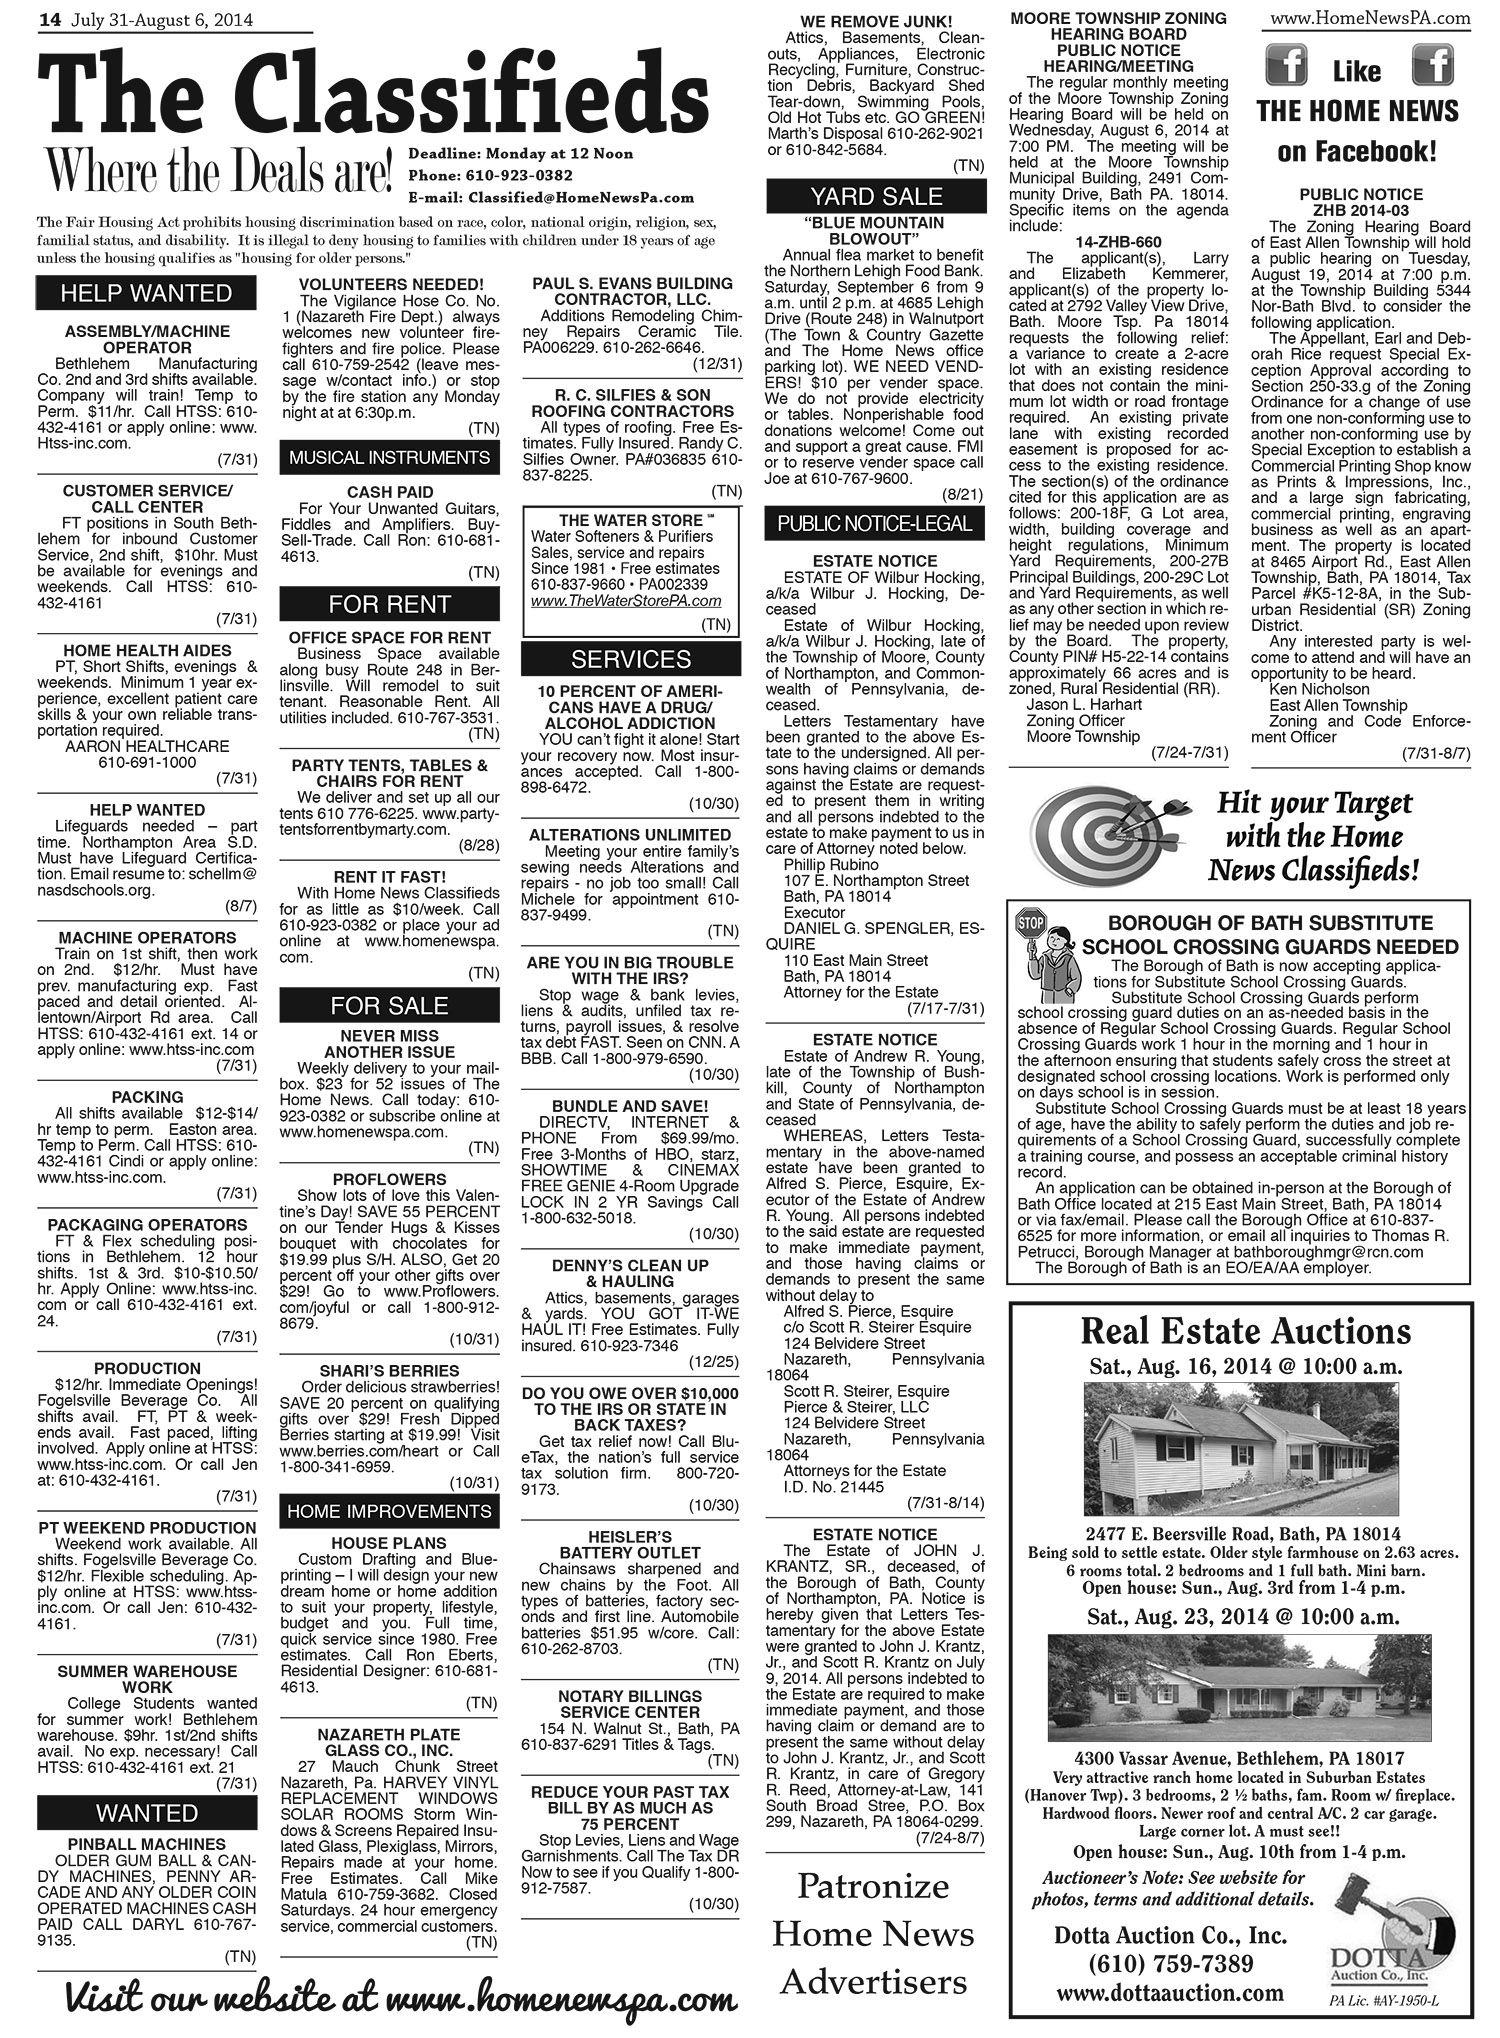 classifieds-1